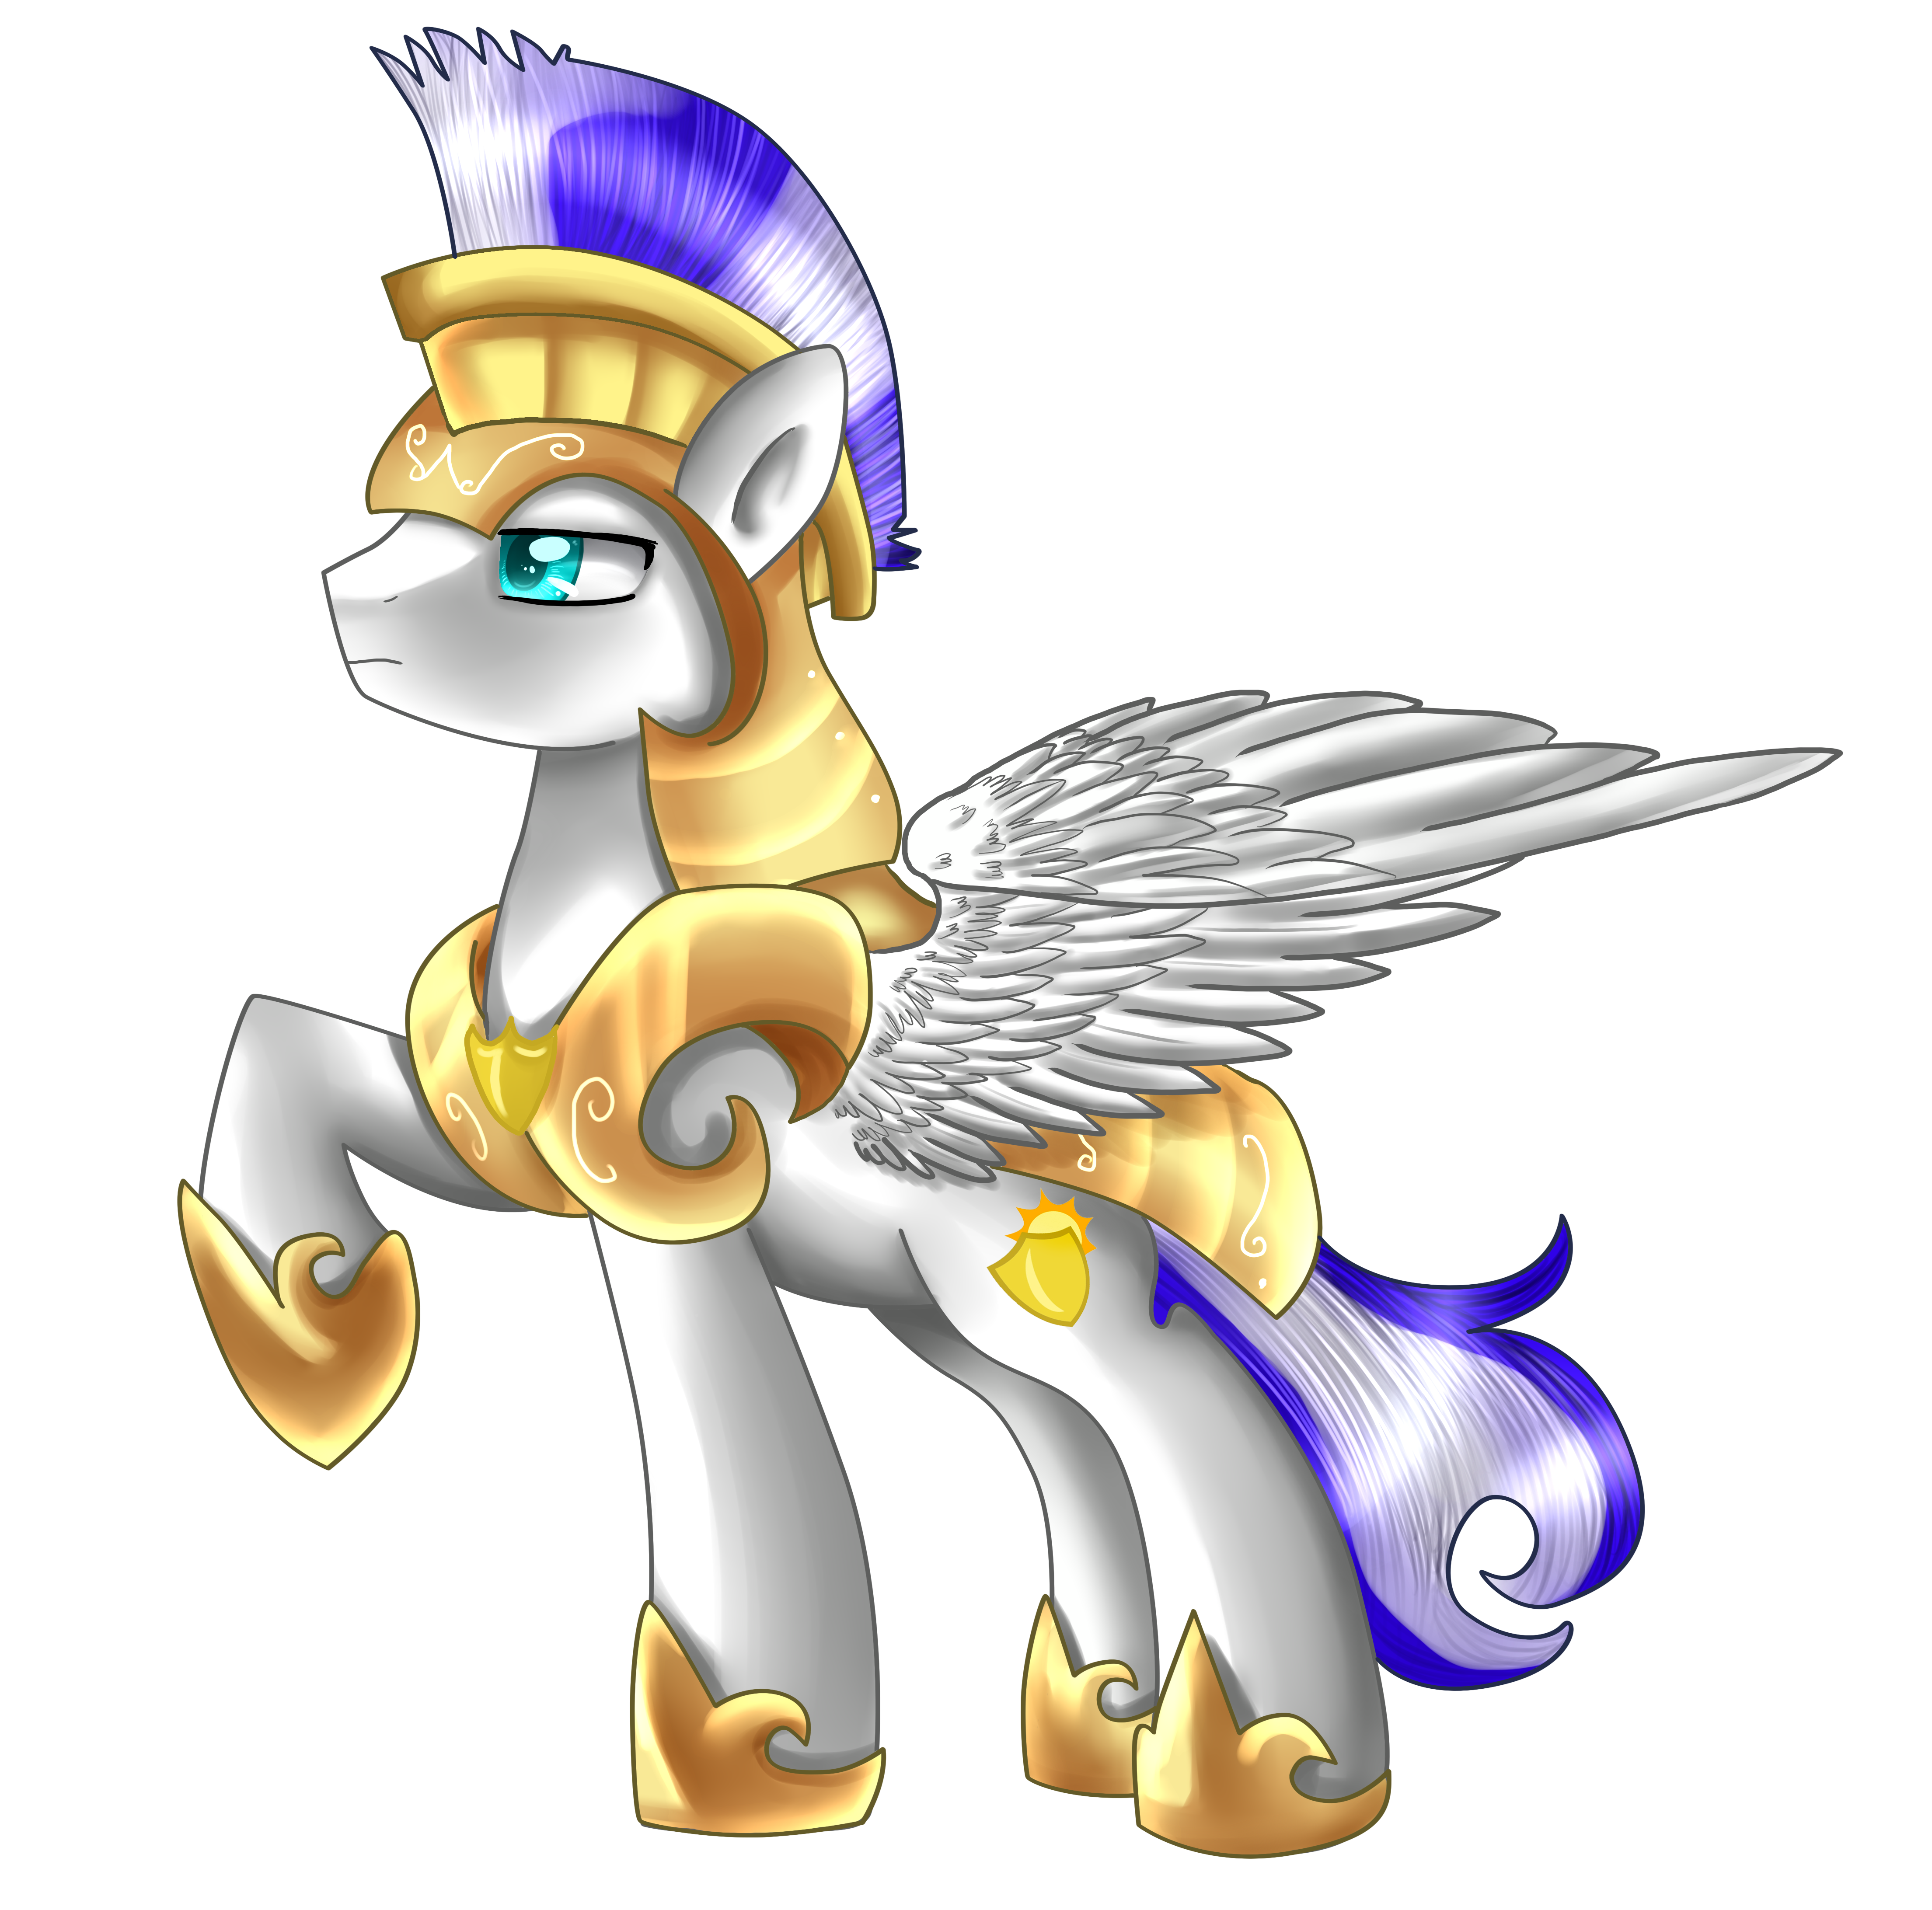 graphic library Solar characters mlp forums. Guard clipart sentinel